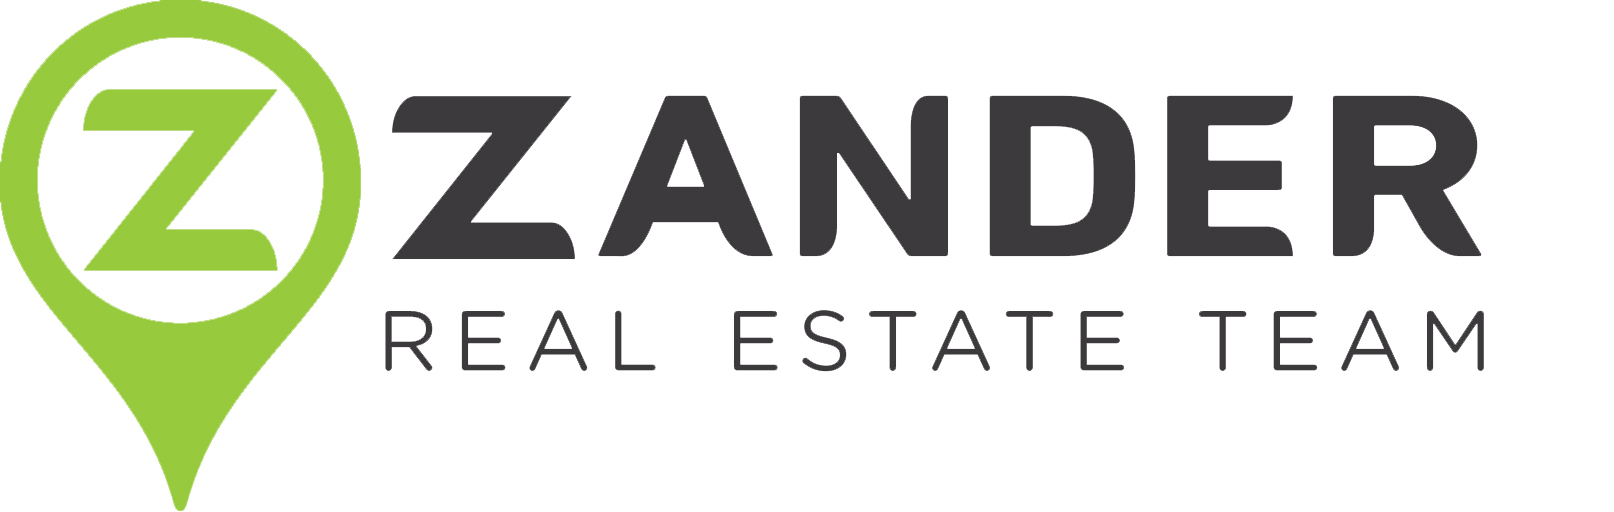 Zander Real Estate Team logo